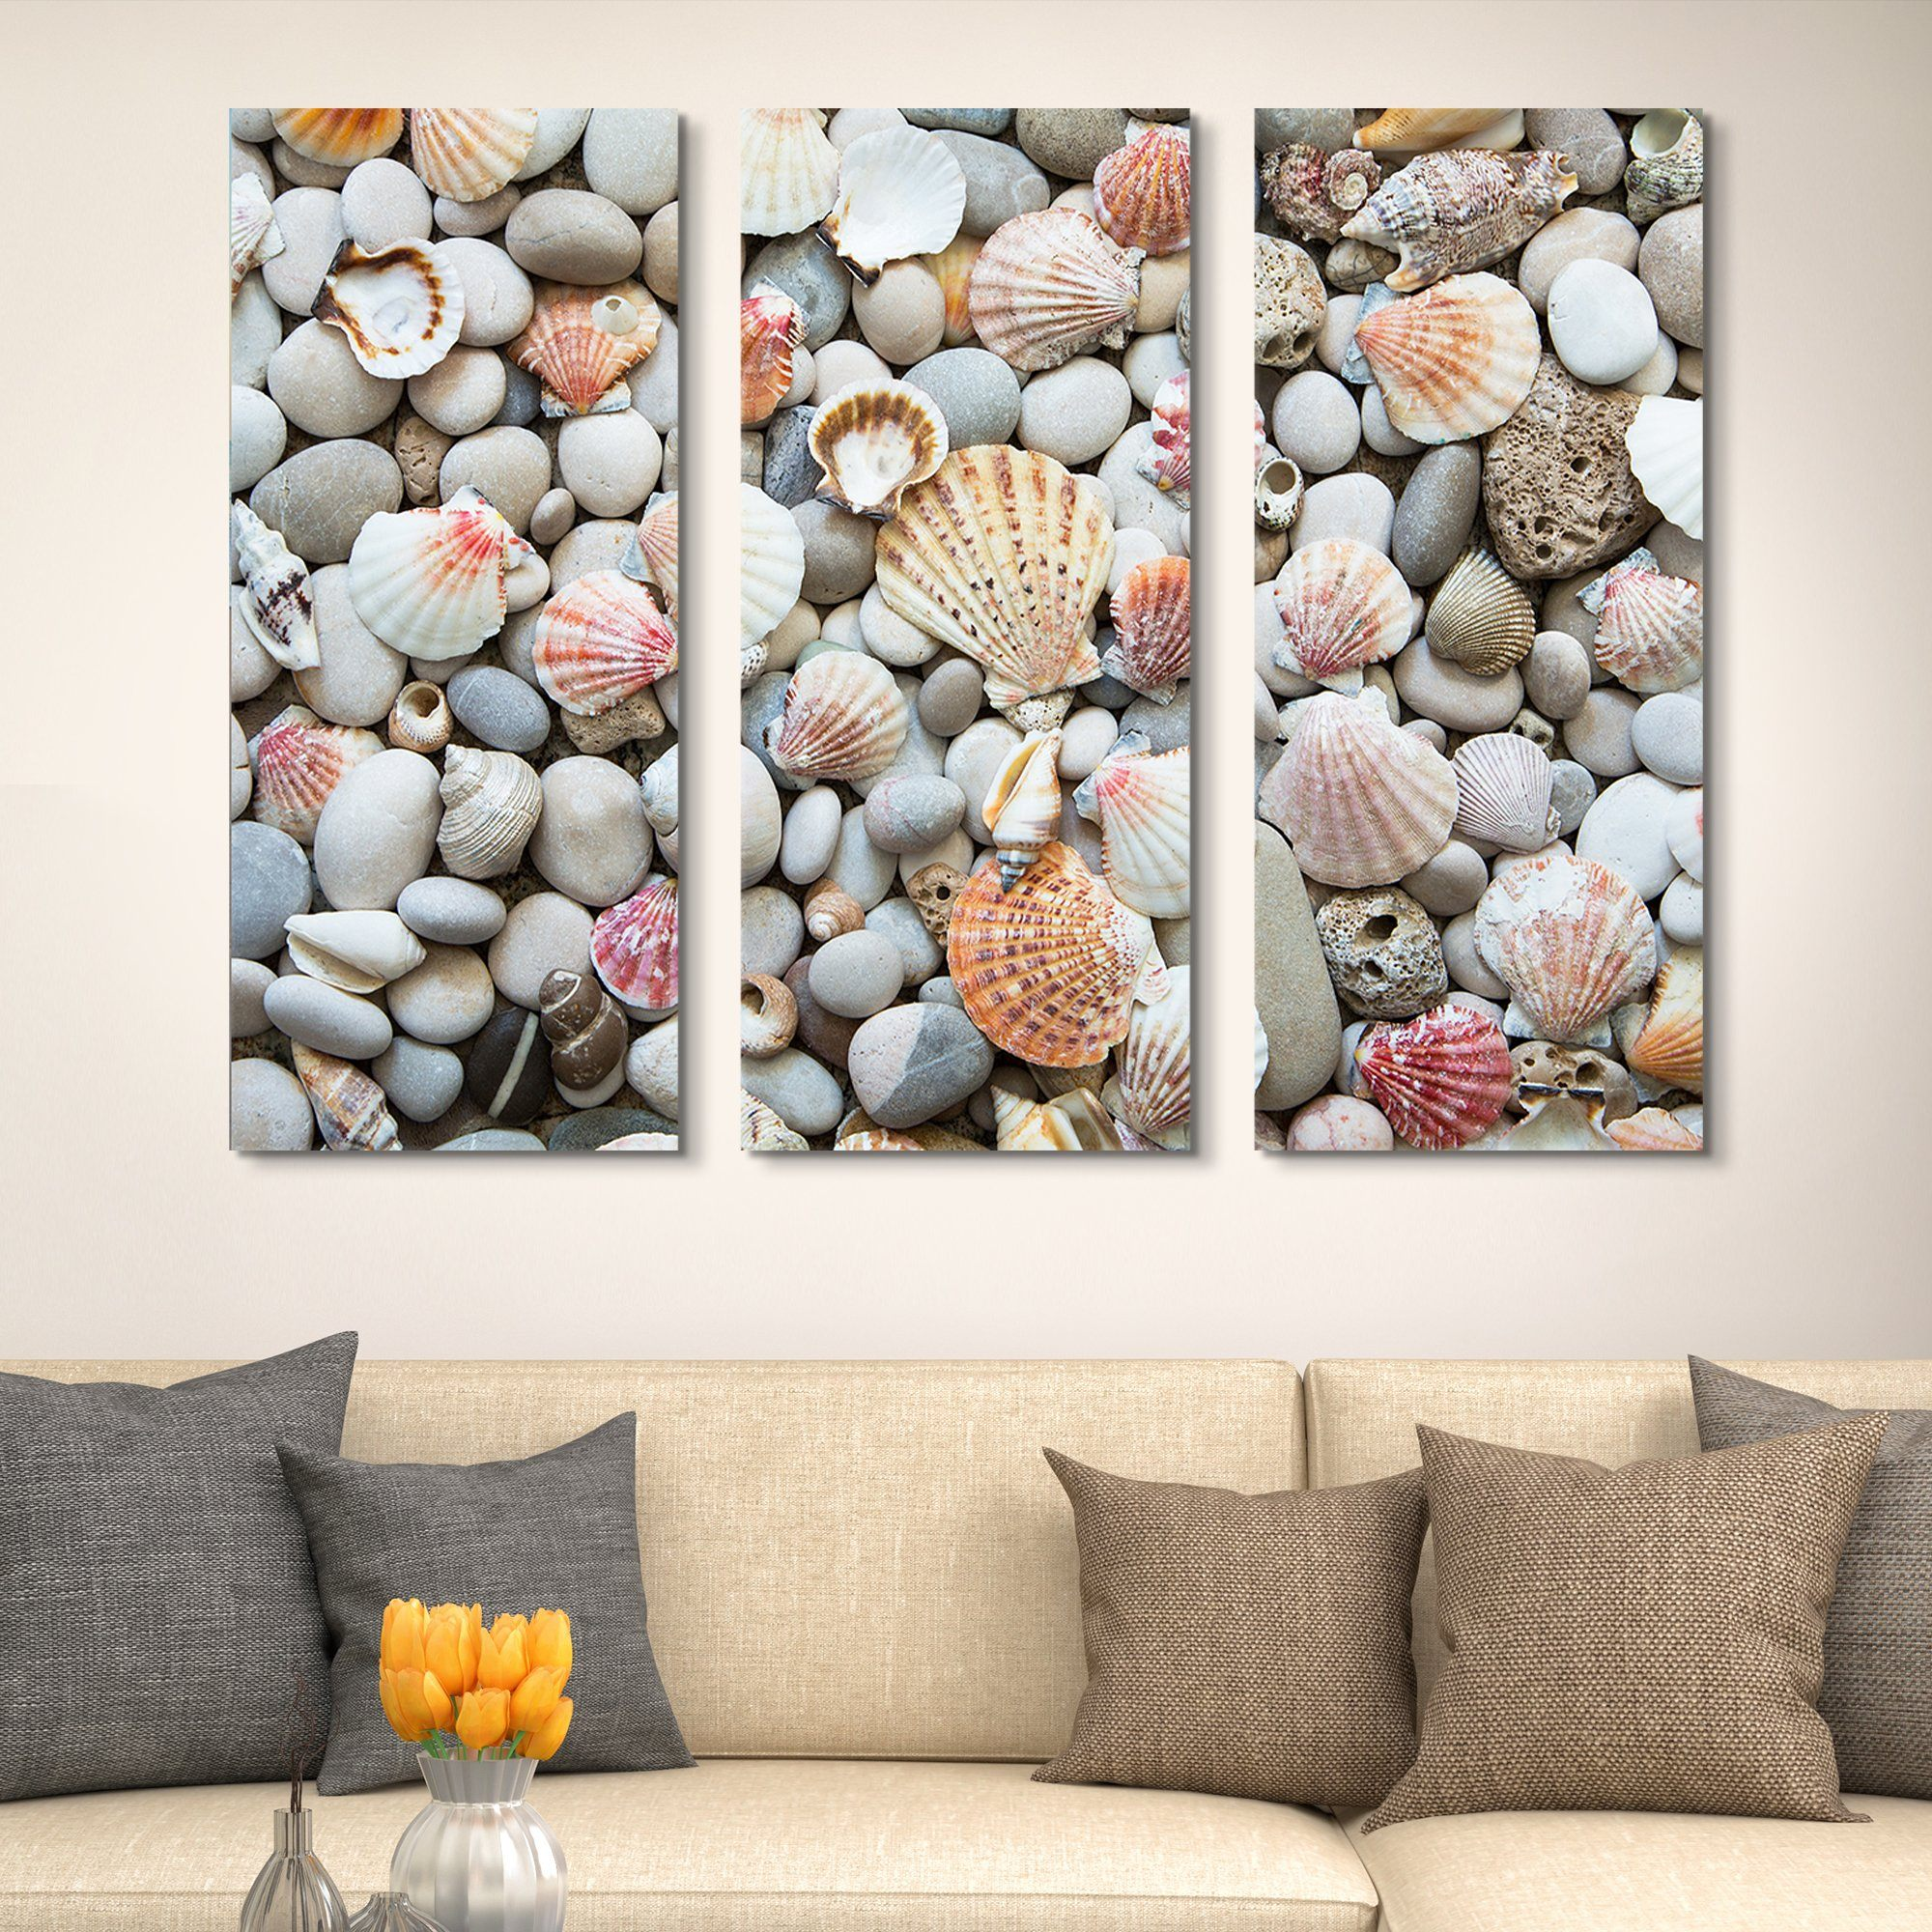 3 piece Seashells by the Seashore wall art